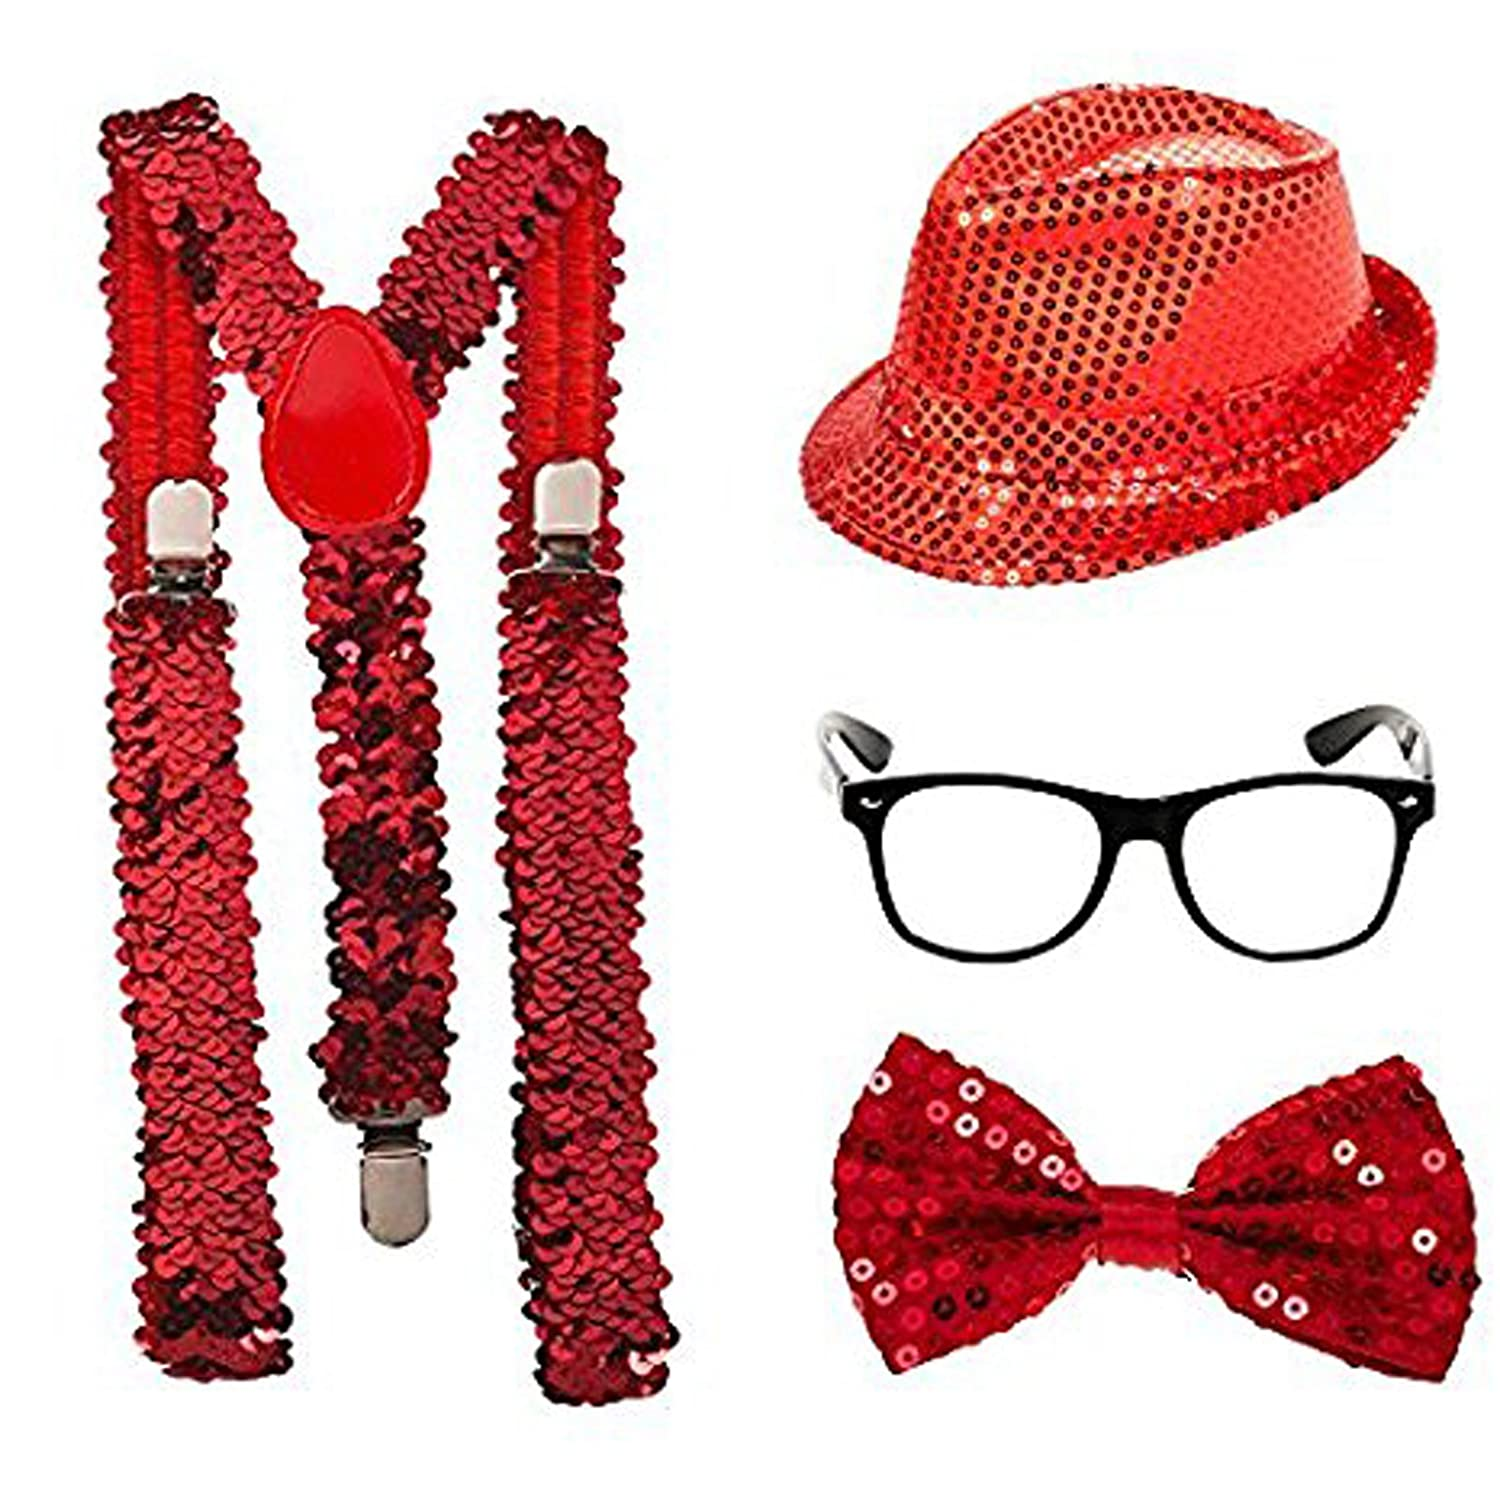 ADULTS SPARKLY SEQUIN HAT BRACES DICKY DICKIE BOW TIE FANCY DRESS PARTY SET